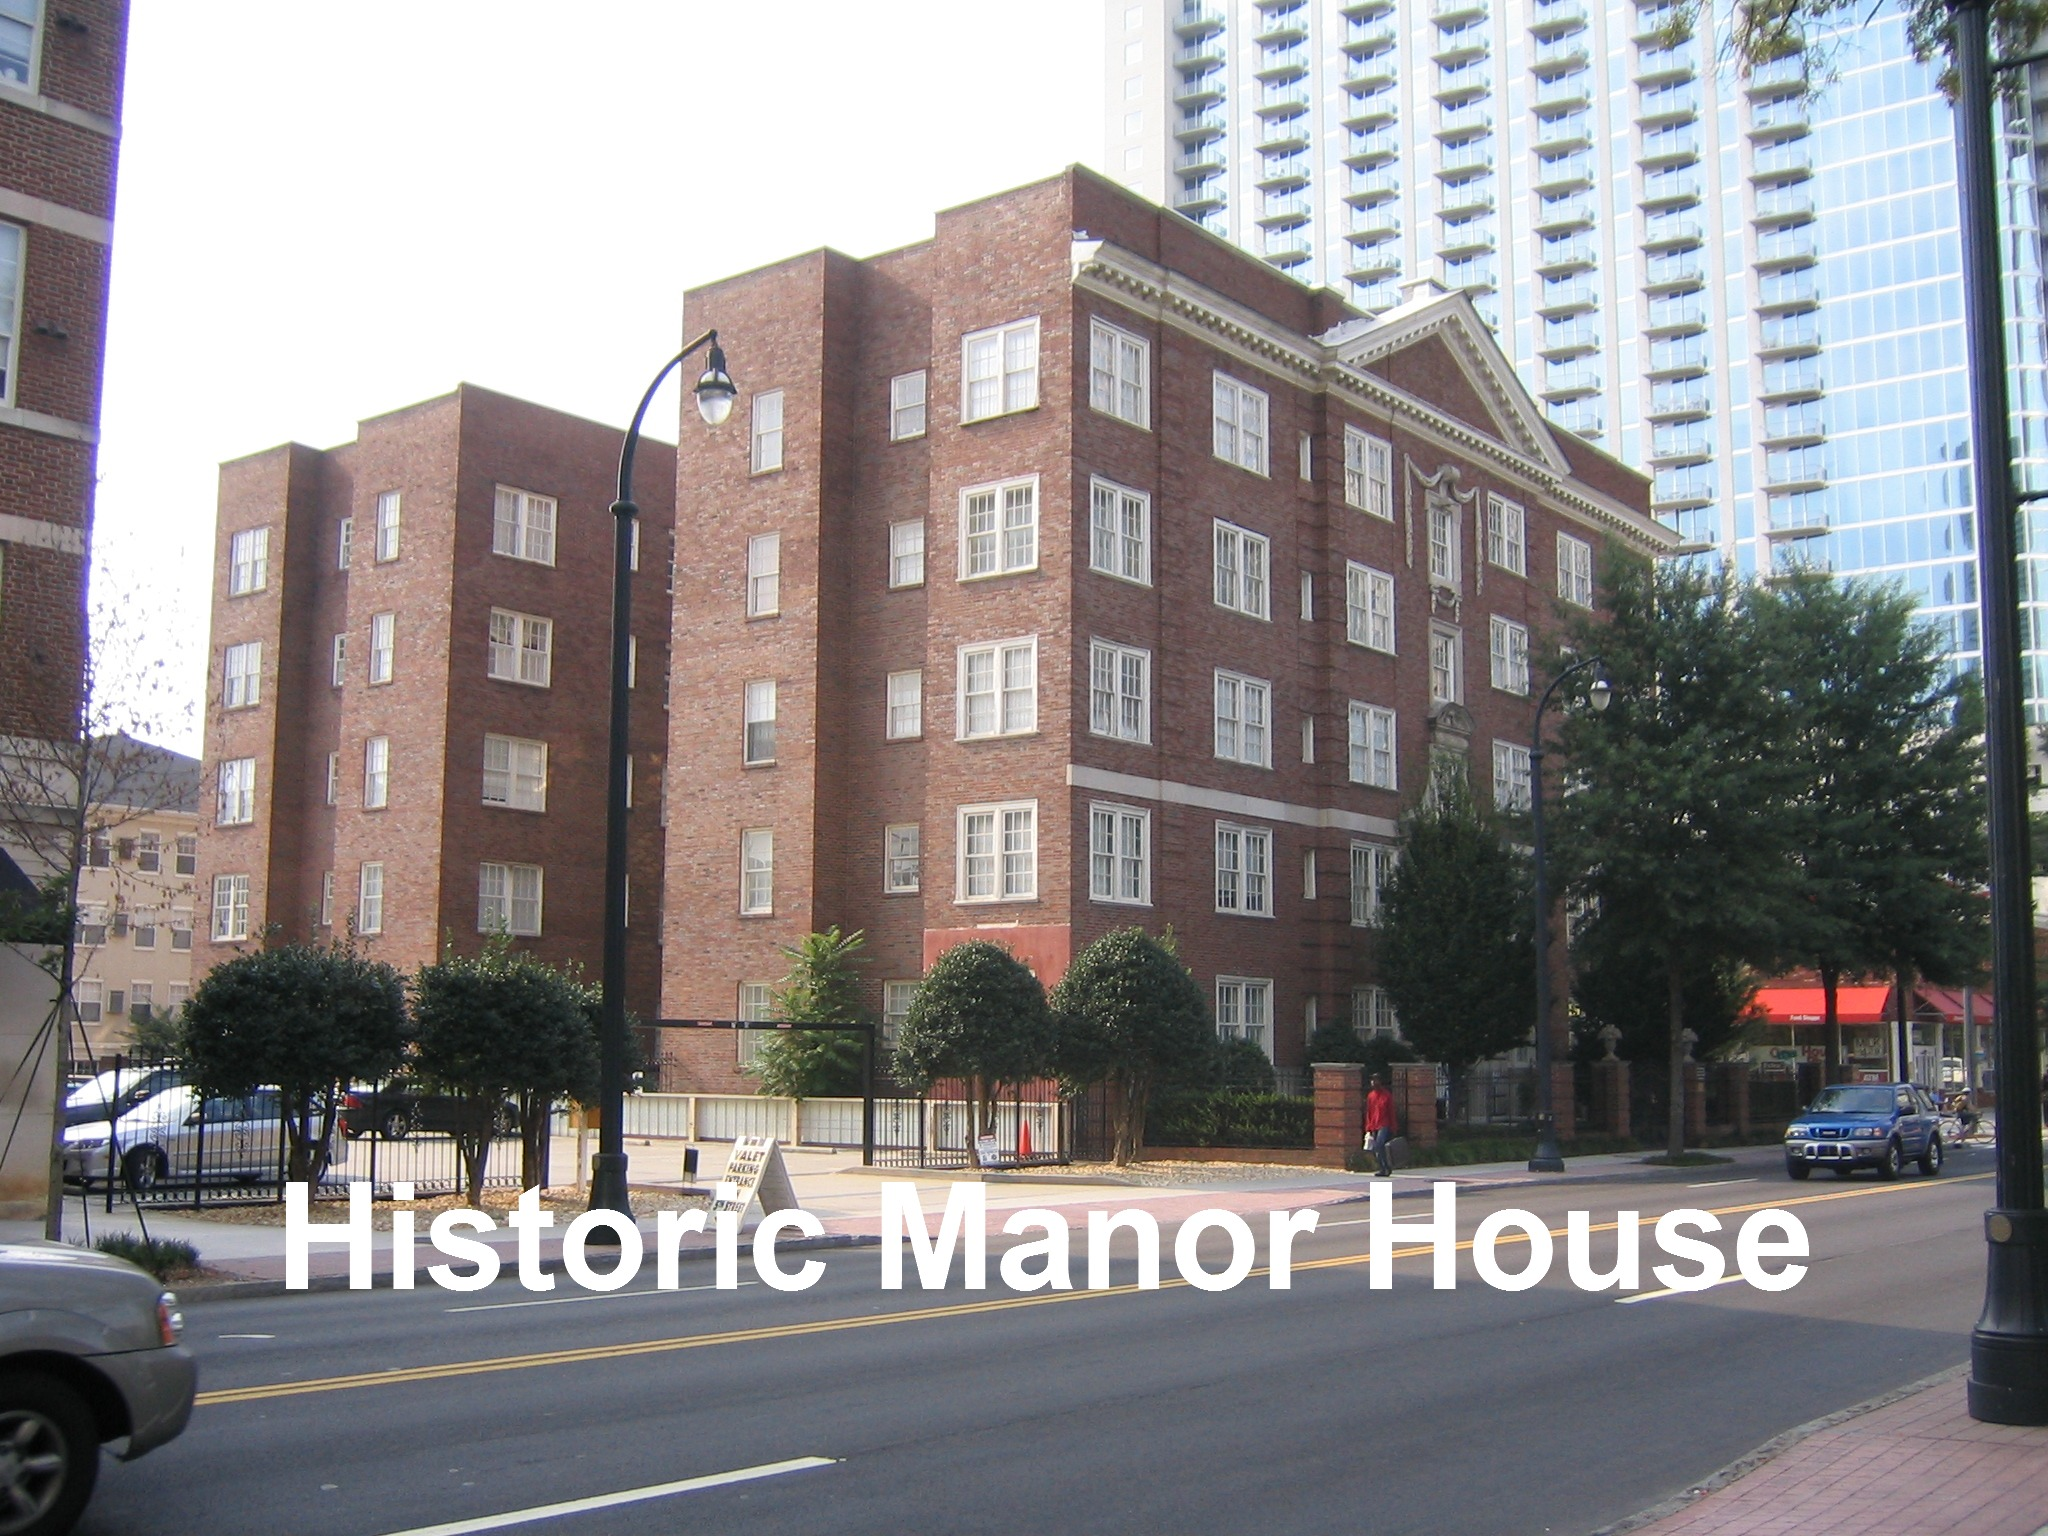 Cornerstone Village Manor House Building